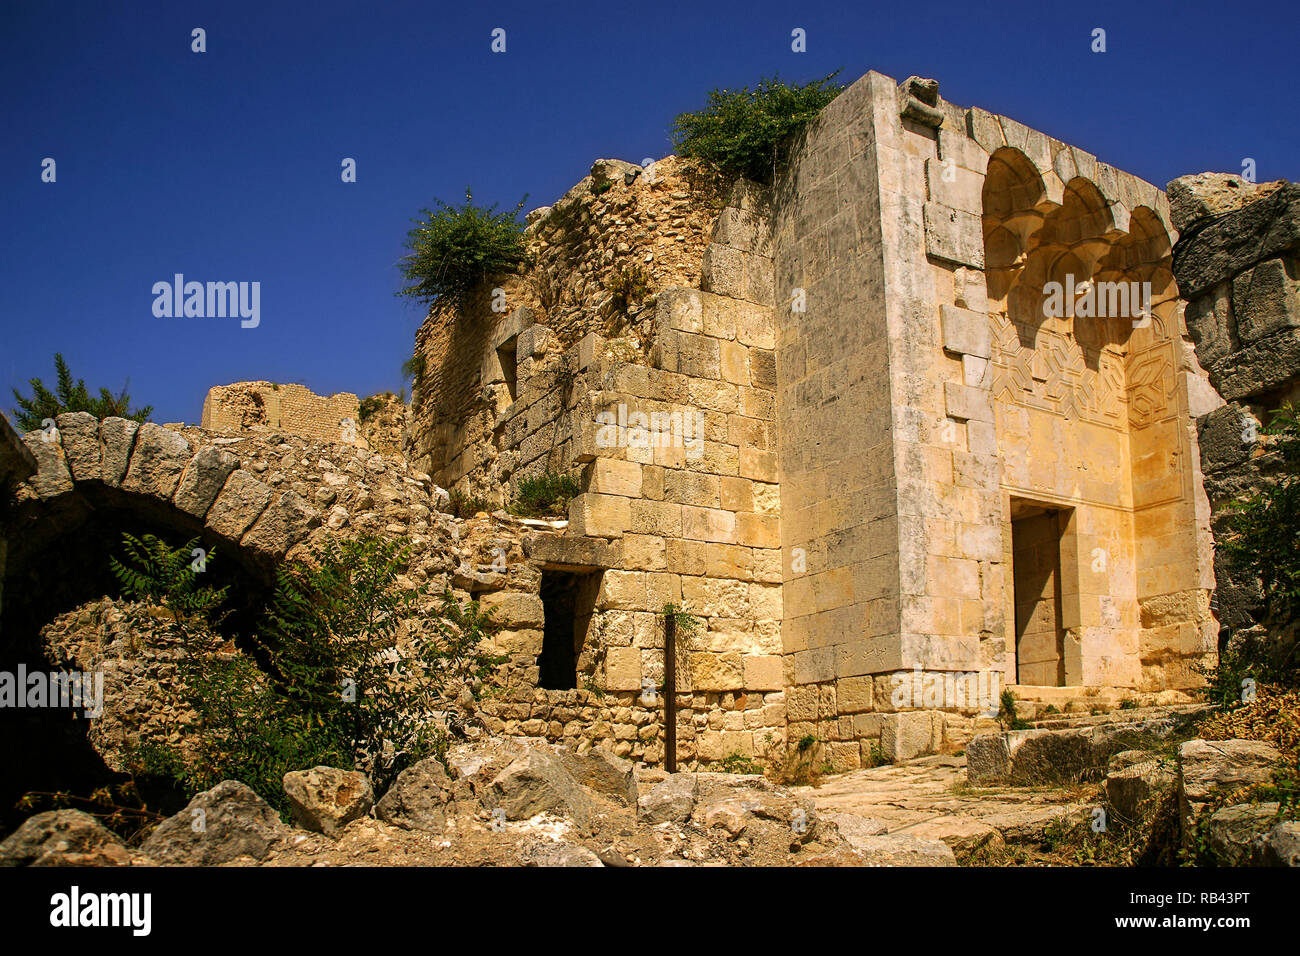 Qal'at Salah El-Din. Room with a fontain, Fortress of Saladin Castle. UNESCO World Heritage. Latakia Syria, Middle East - Stock Image